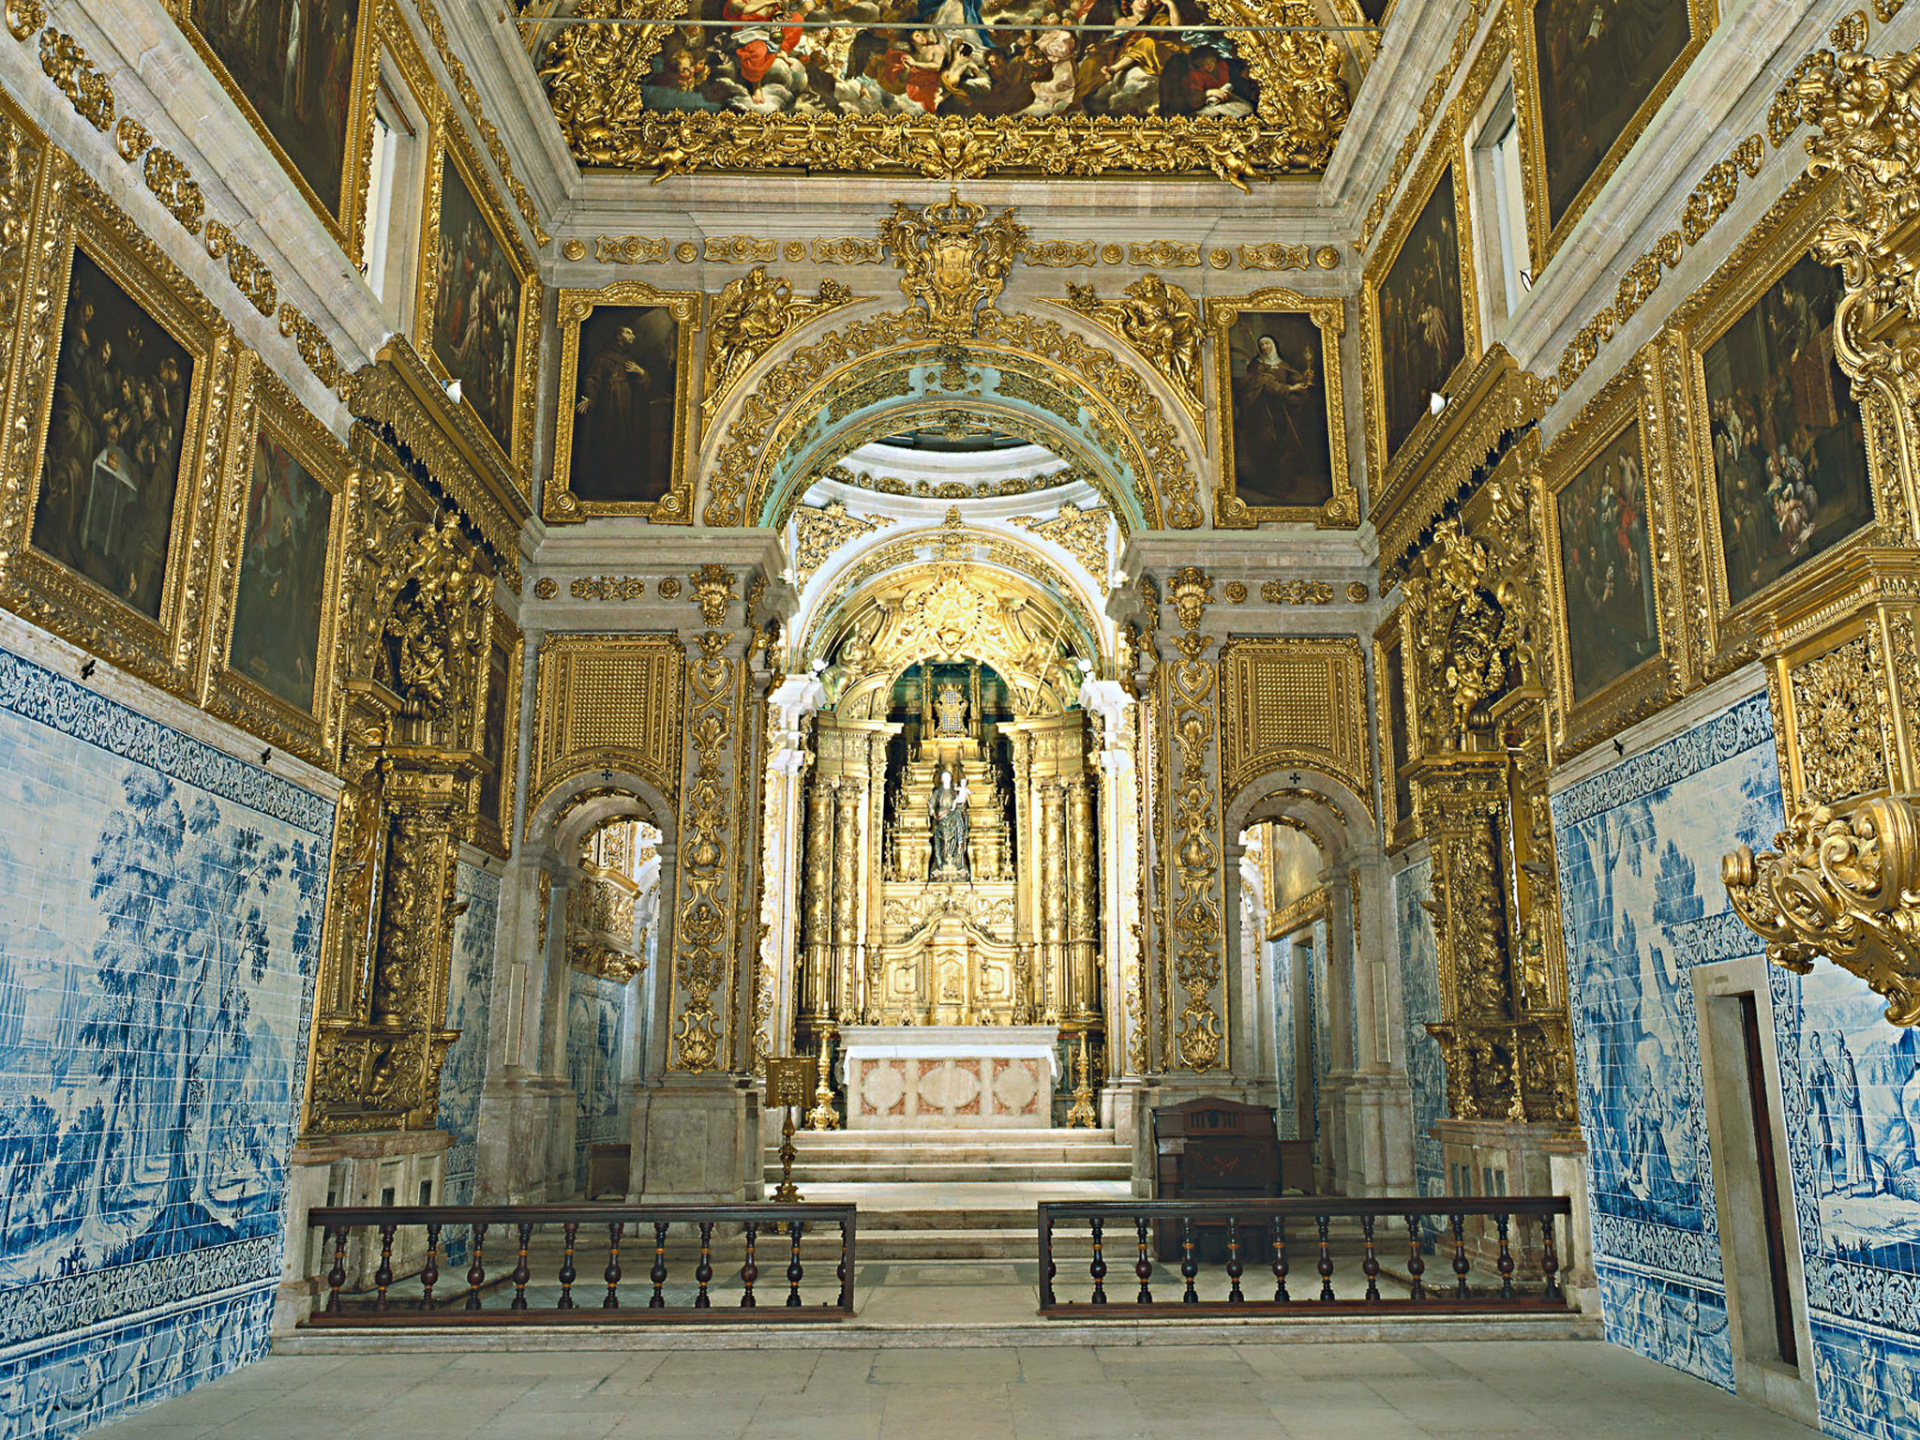 Museums in Portugal: National Azulejo Museum what to do in lisbon What To Do In Lisbon: 48 Hours In The Capital See a Selection of Some of the Most Prestigious Museums in Portugal 5 2